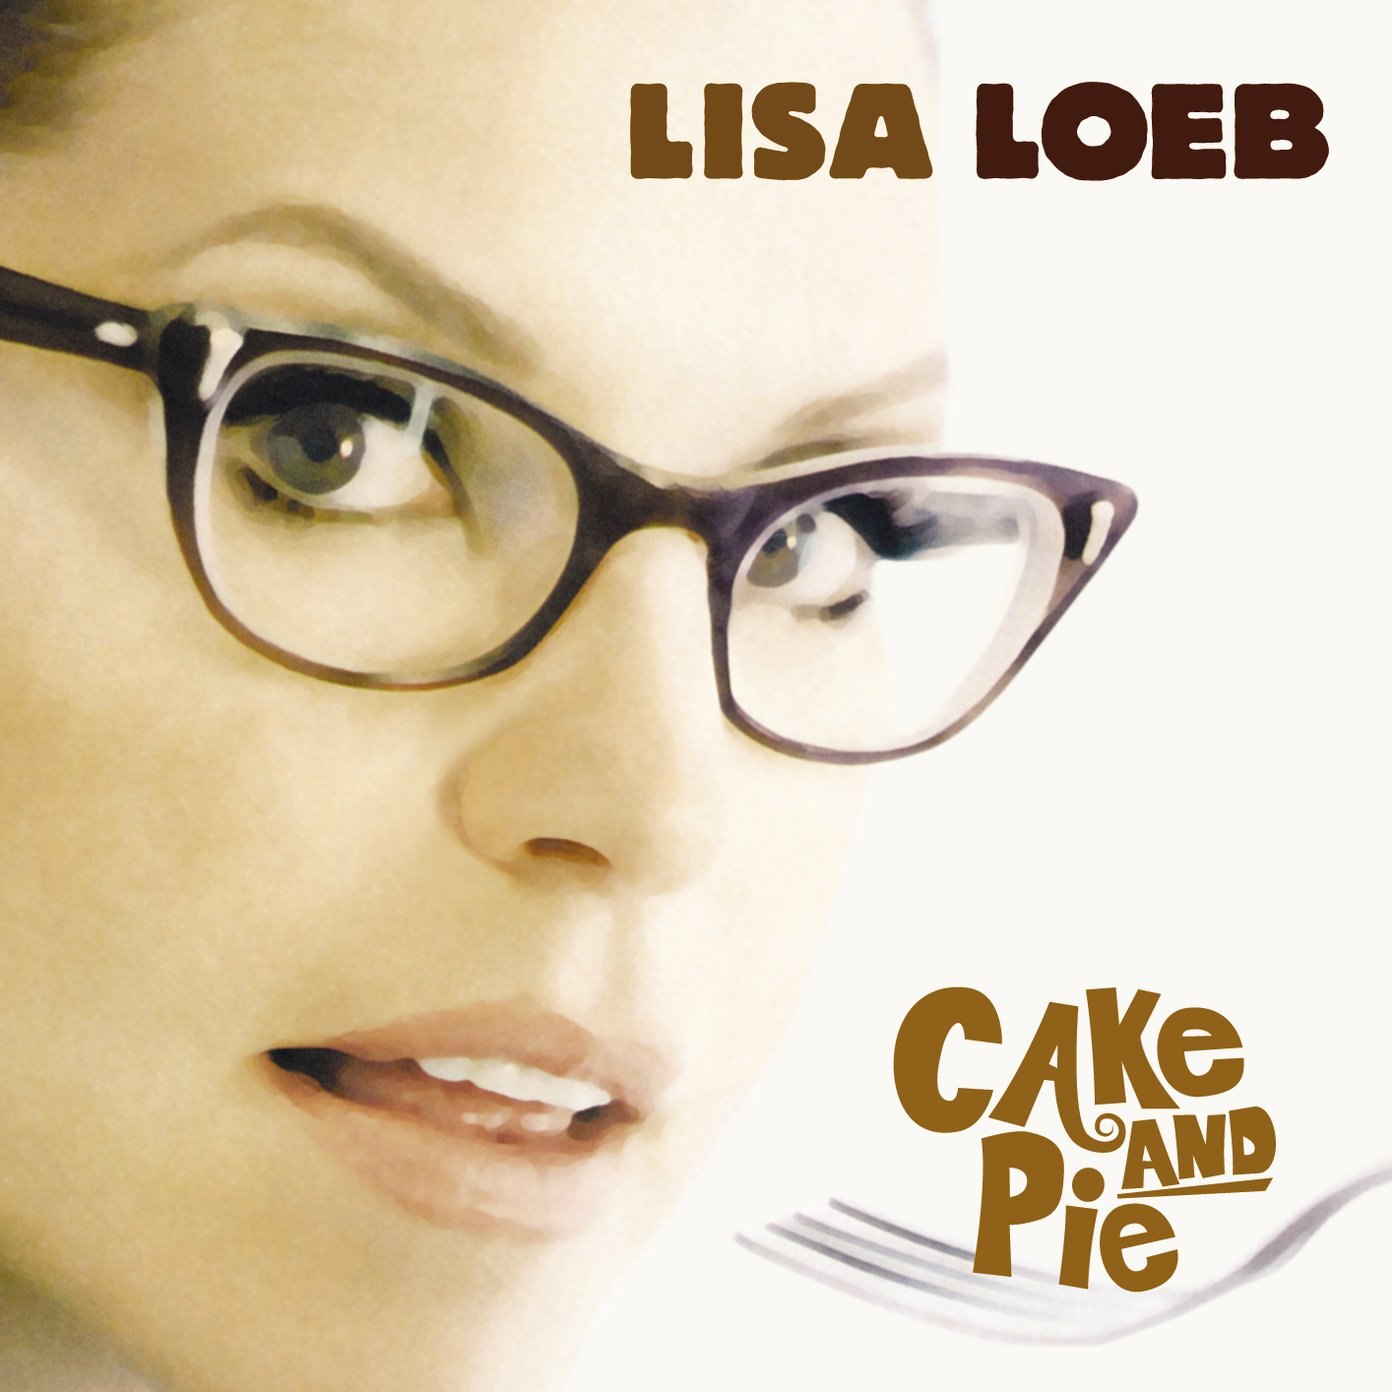 Lisa Loeb, Cake and Pie